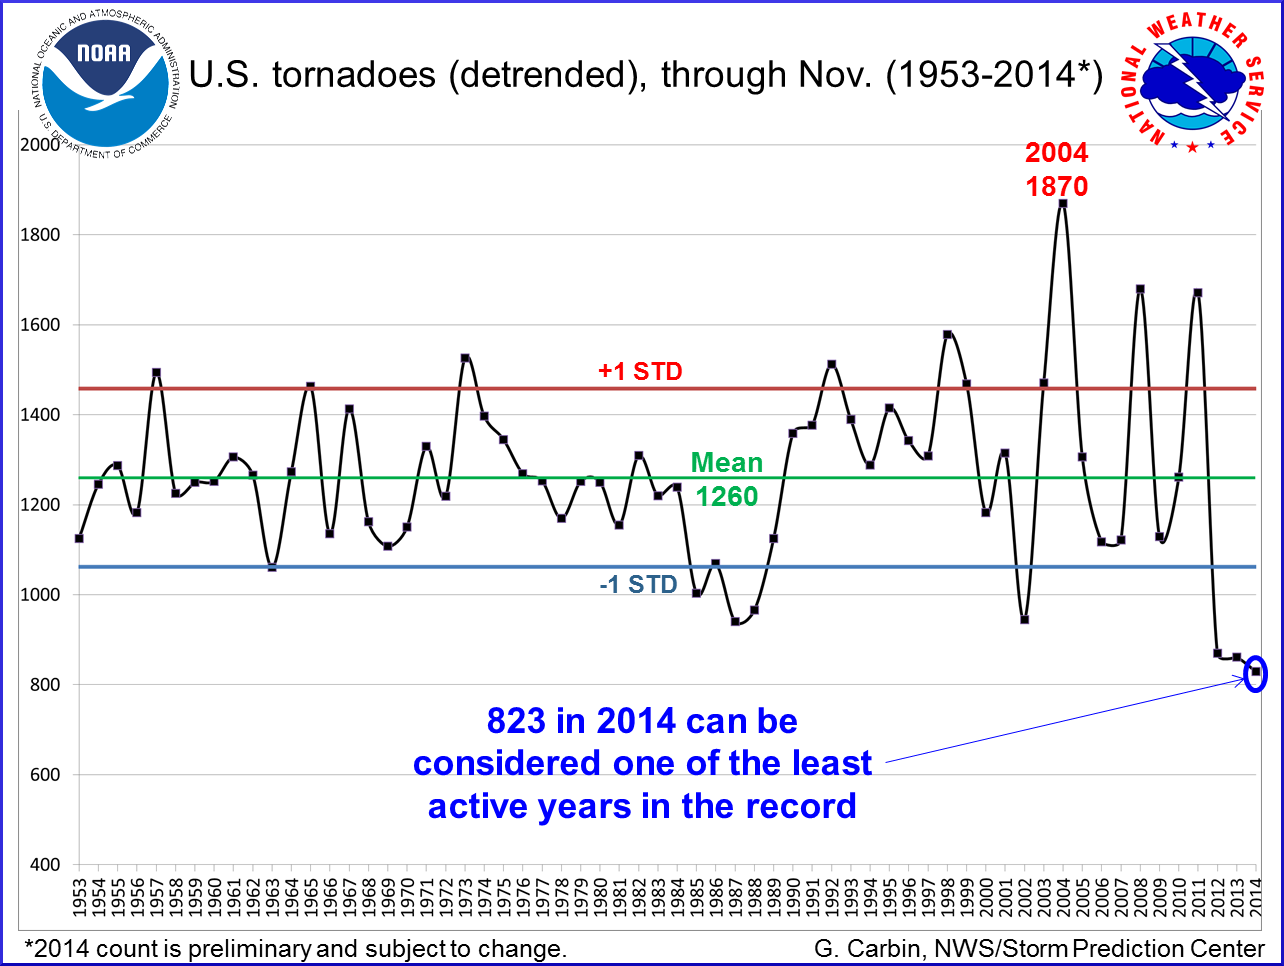 50 years of tornadoes 121114.png